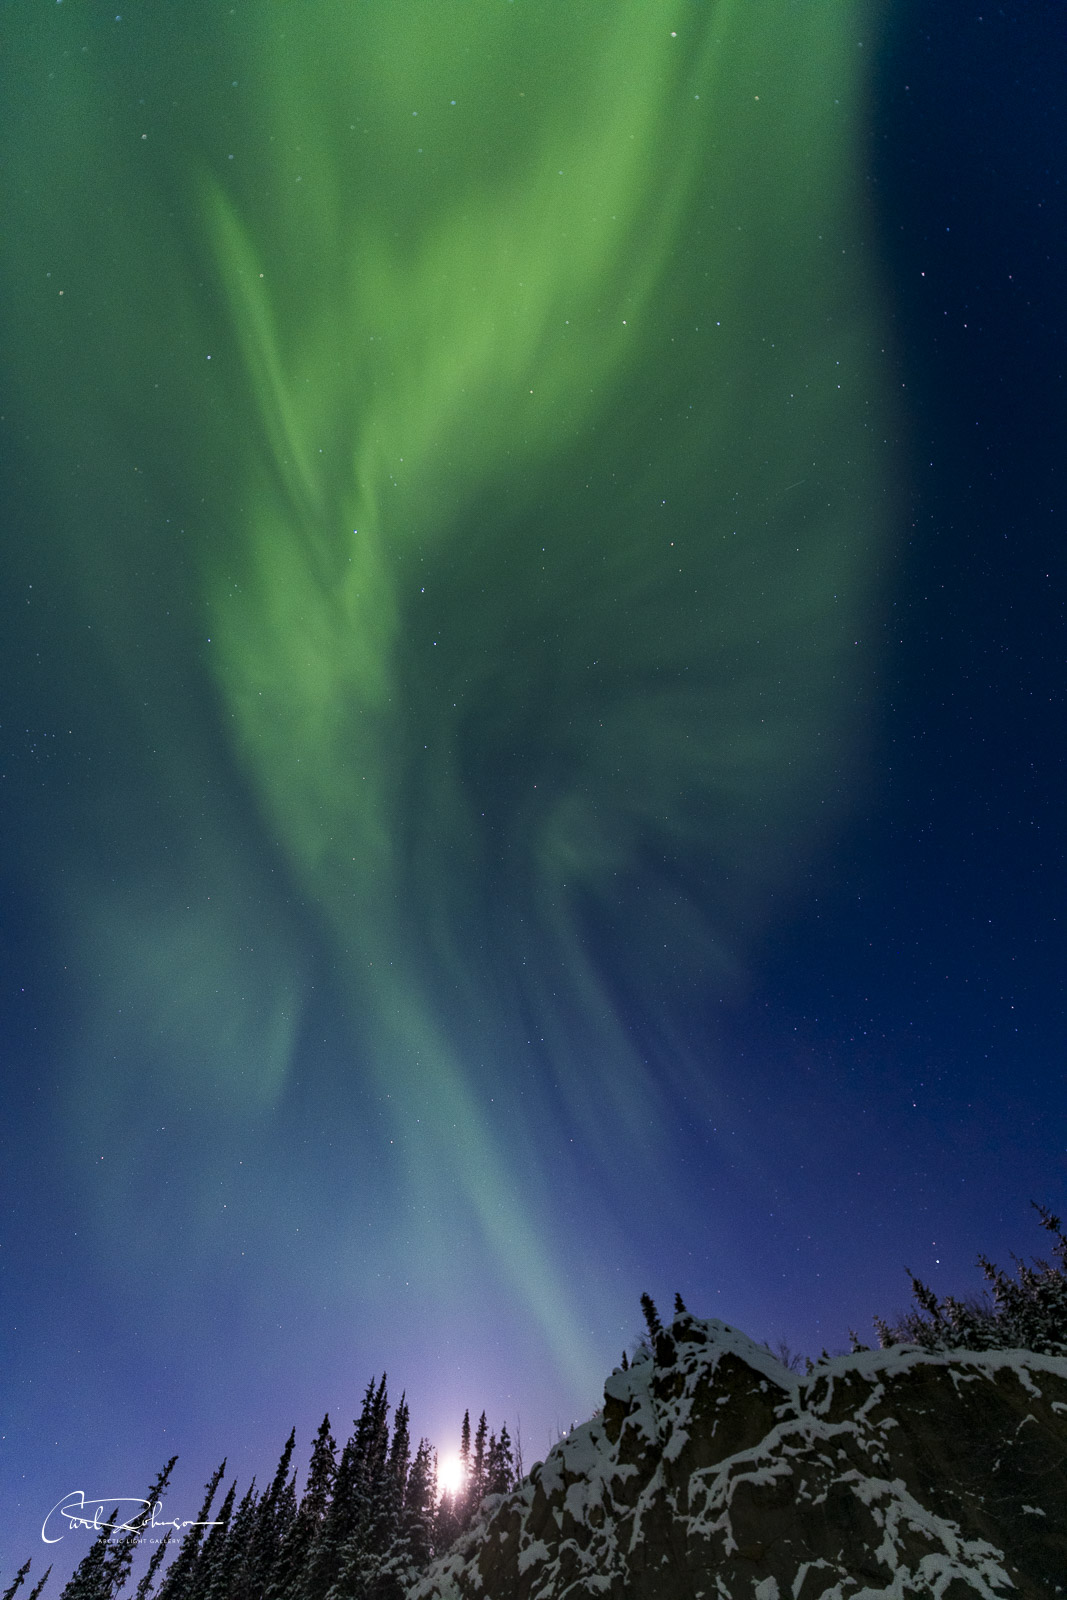 When the aurora borealis gets really active, you have to remember to look up occasionally. While stopped at a pullout along the...